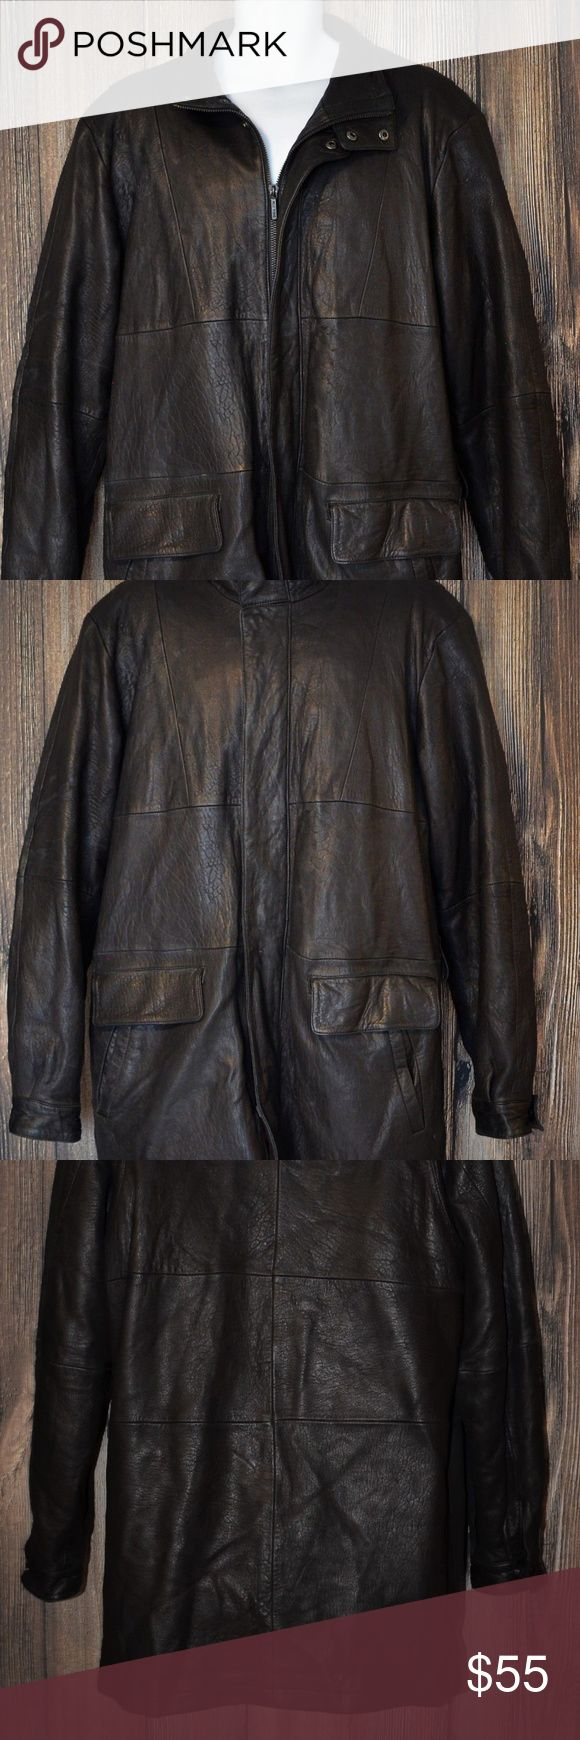 Wilsons Leather Thinsulate Ultra Insulated Jacket Men's